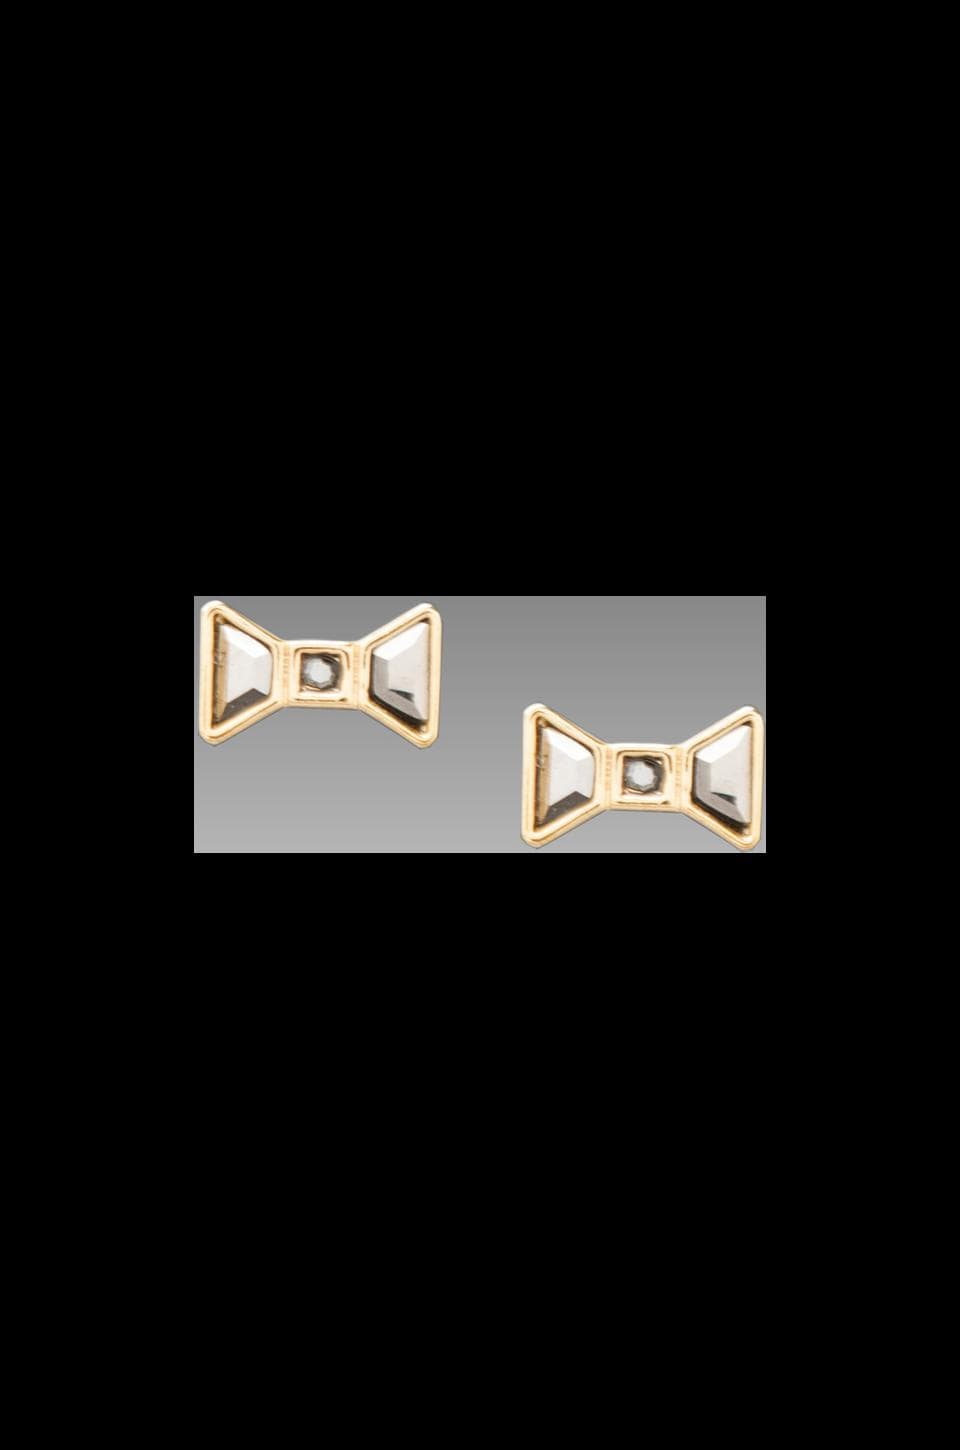 Marc by Marc Jacobs Polka Dot Bow Stud Earrings in Silver Flare Oro